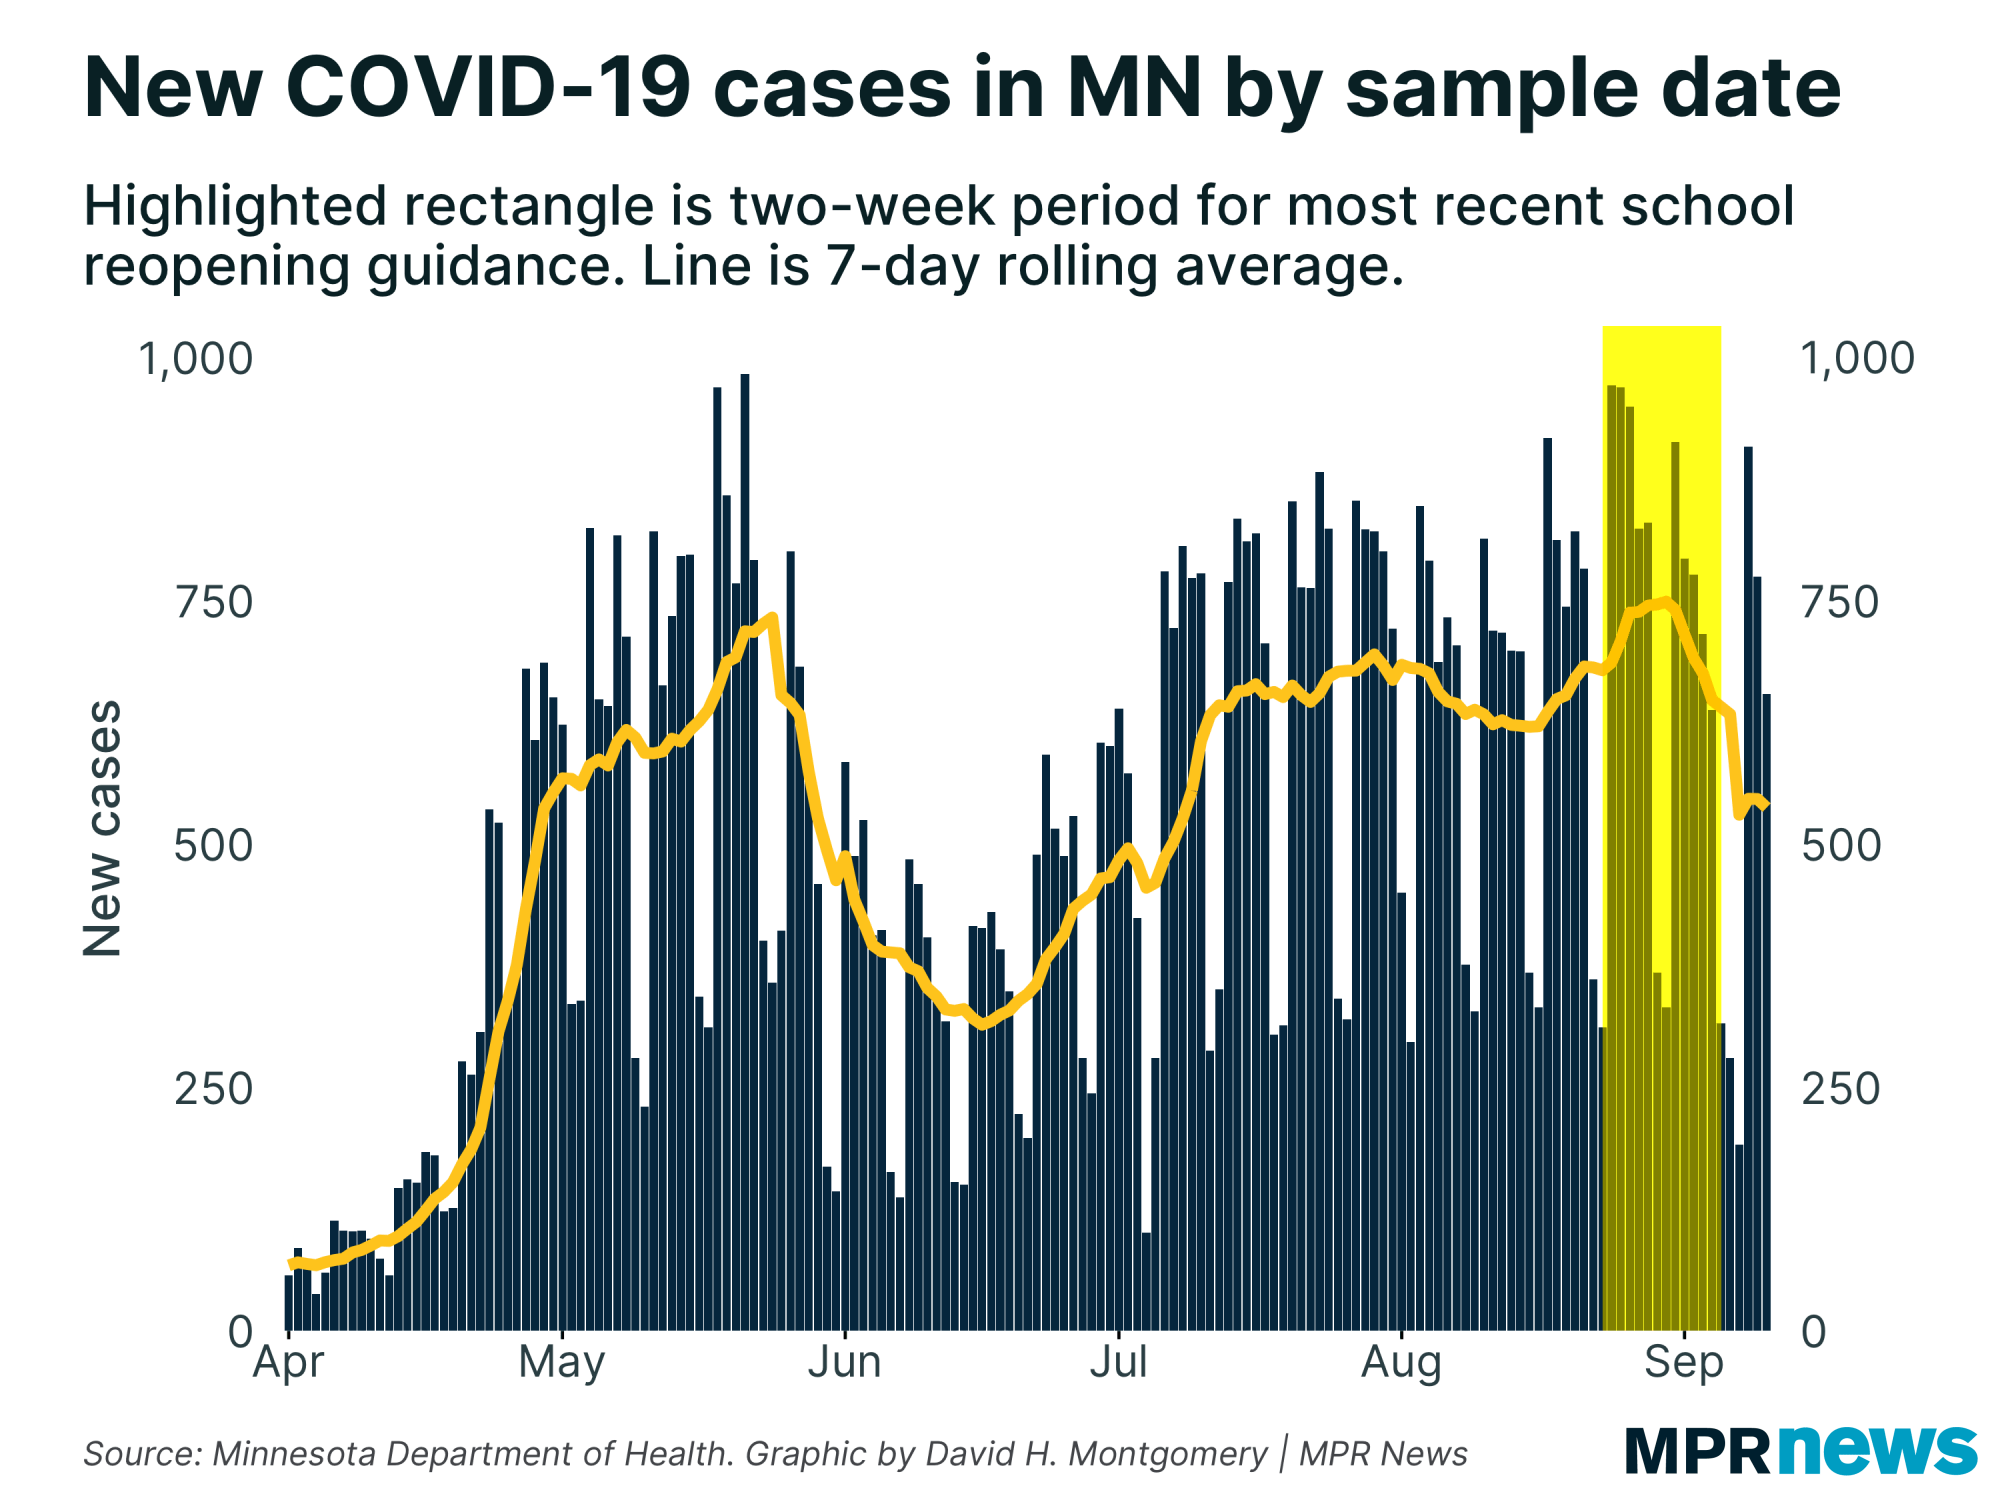 New COVID-19 cases over the period used for school reopening guidance